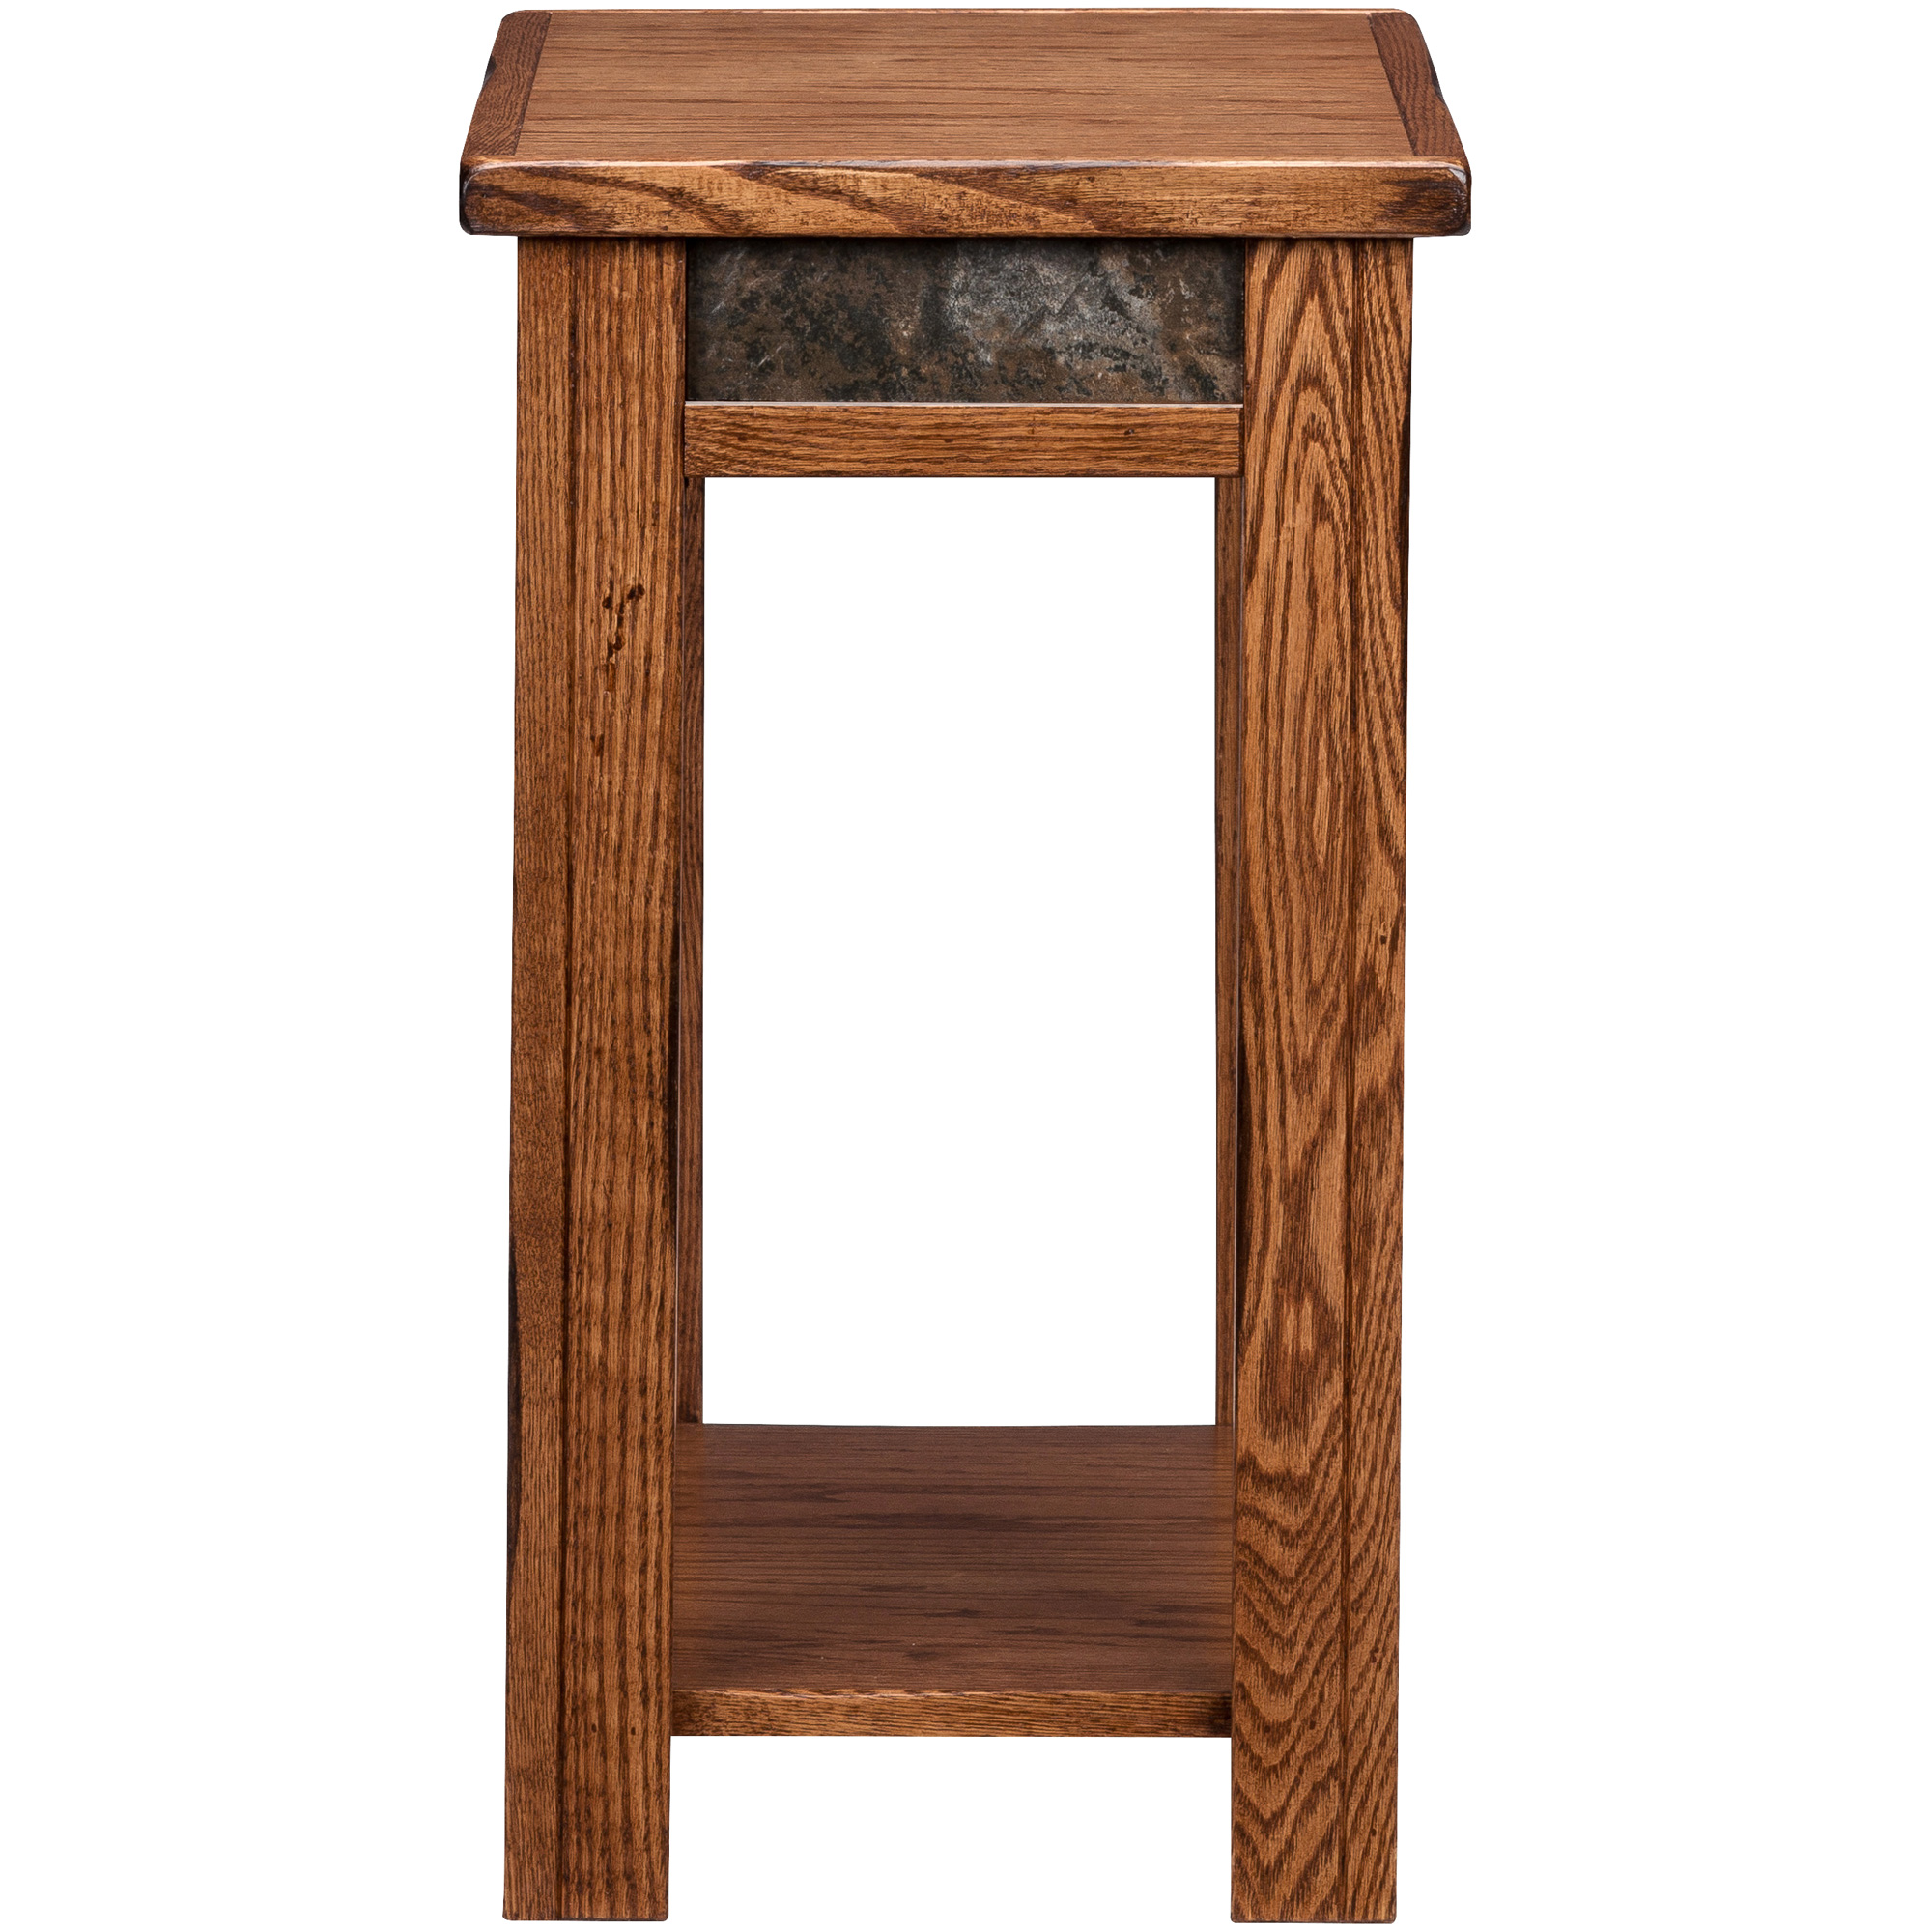 Legends Furniture | Evanston Antique Oak Rustic Chairside Table